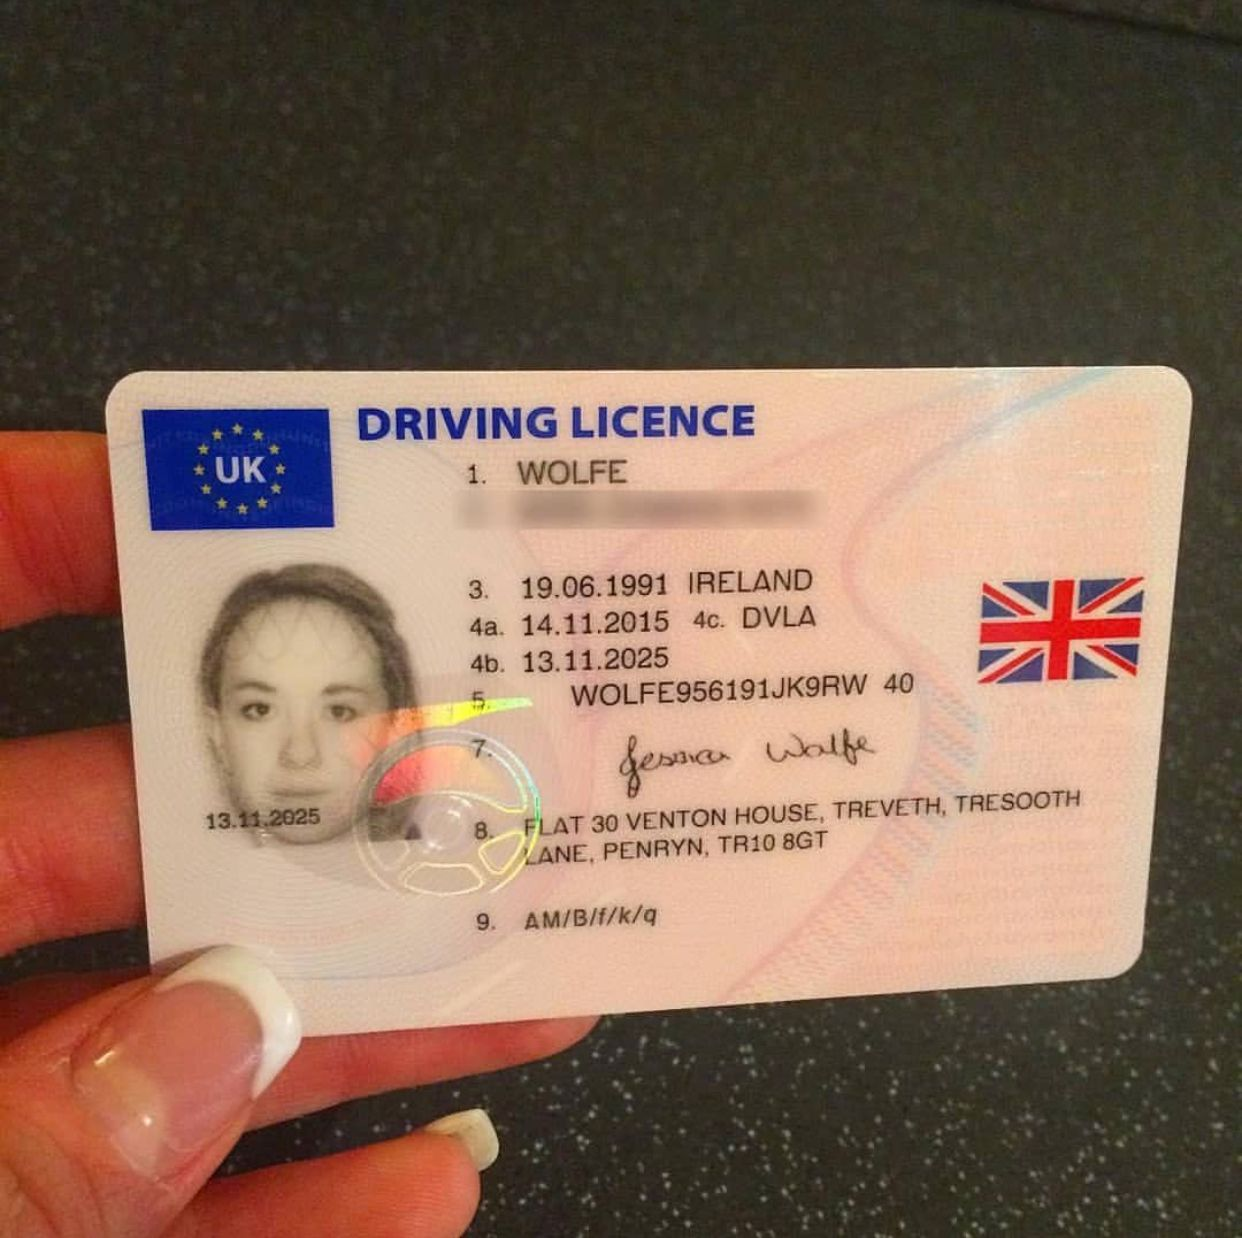 67b0e5f3df6ef466890f3574d1b4e8b4 - How To Get My Driving Licence Number Without My Licence